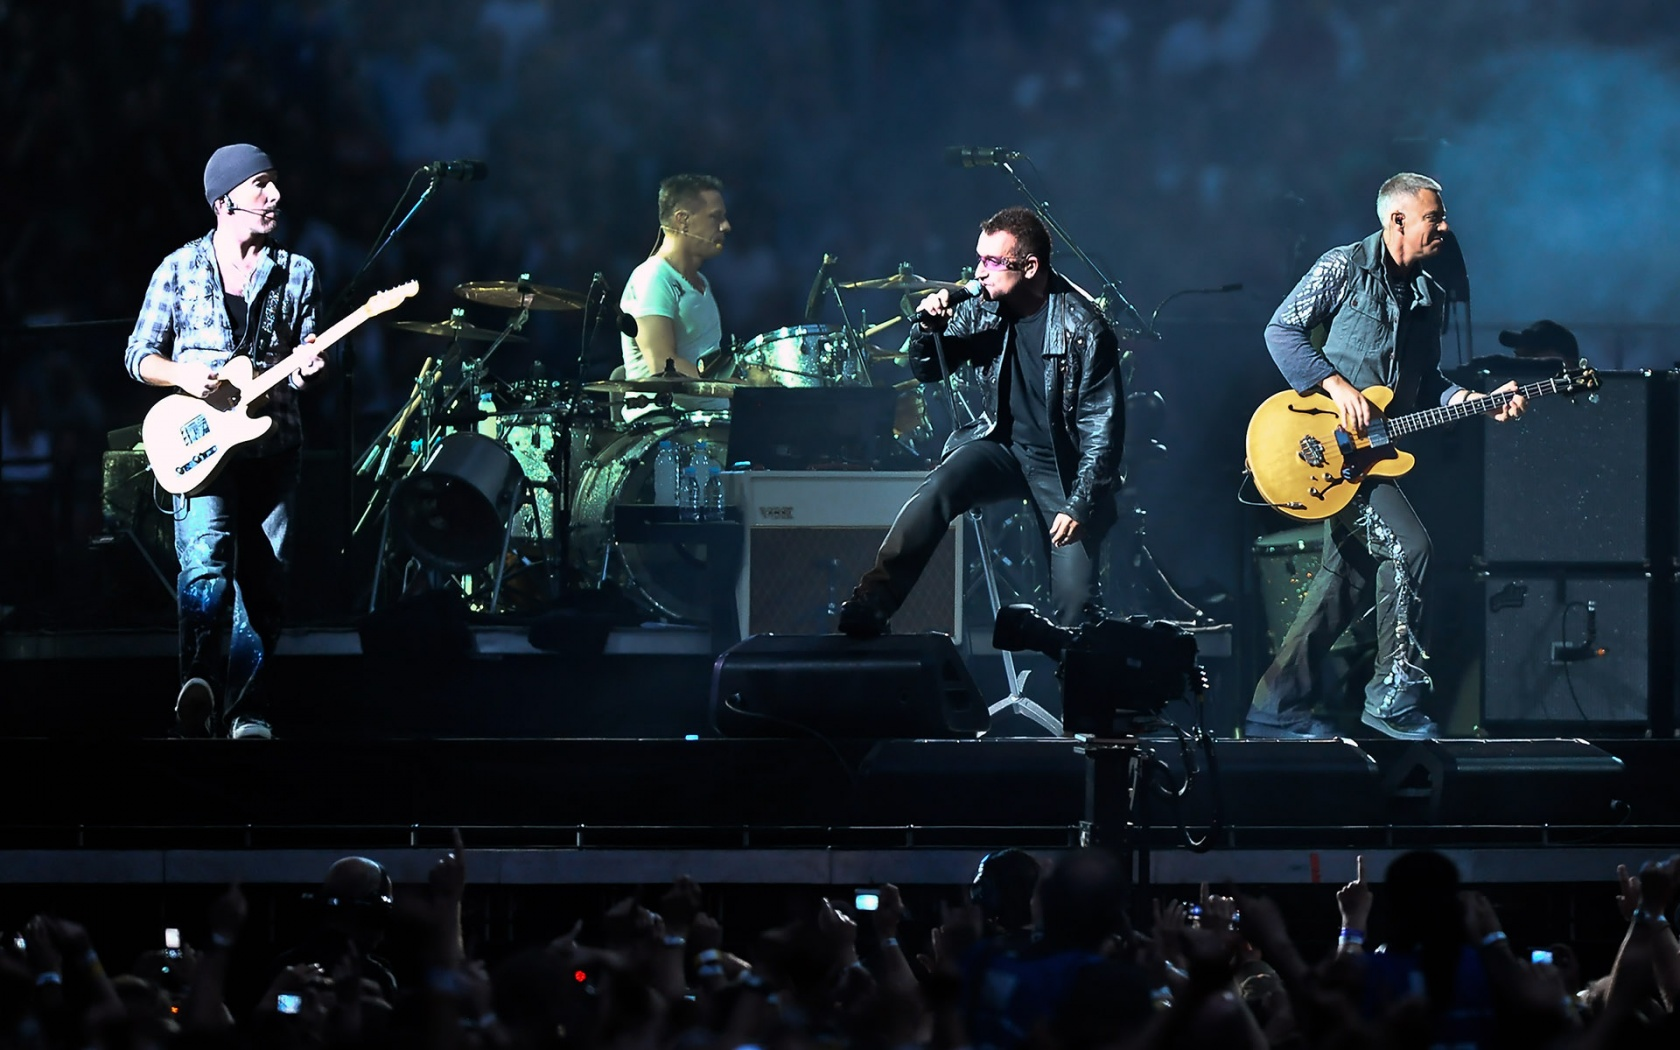 HQ U2 In Concert Wallpaper   HQ Wallpapers 1680x1050